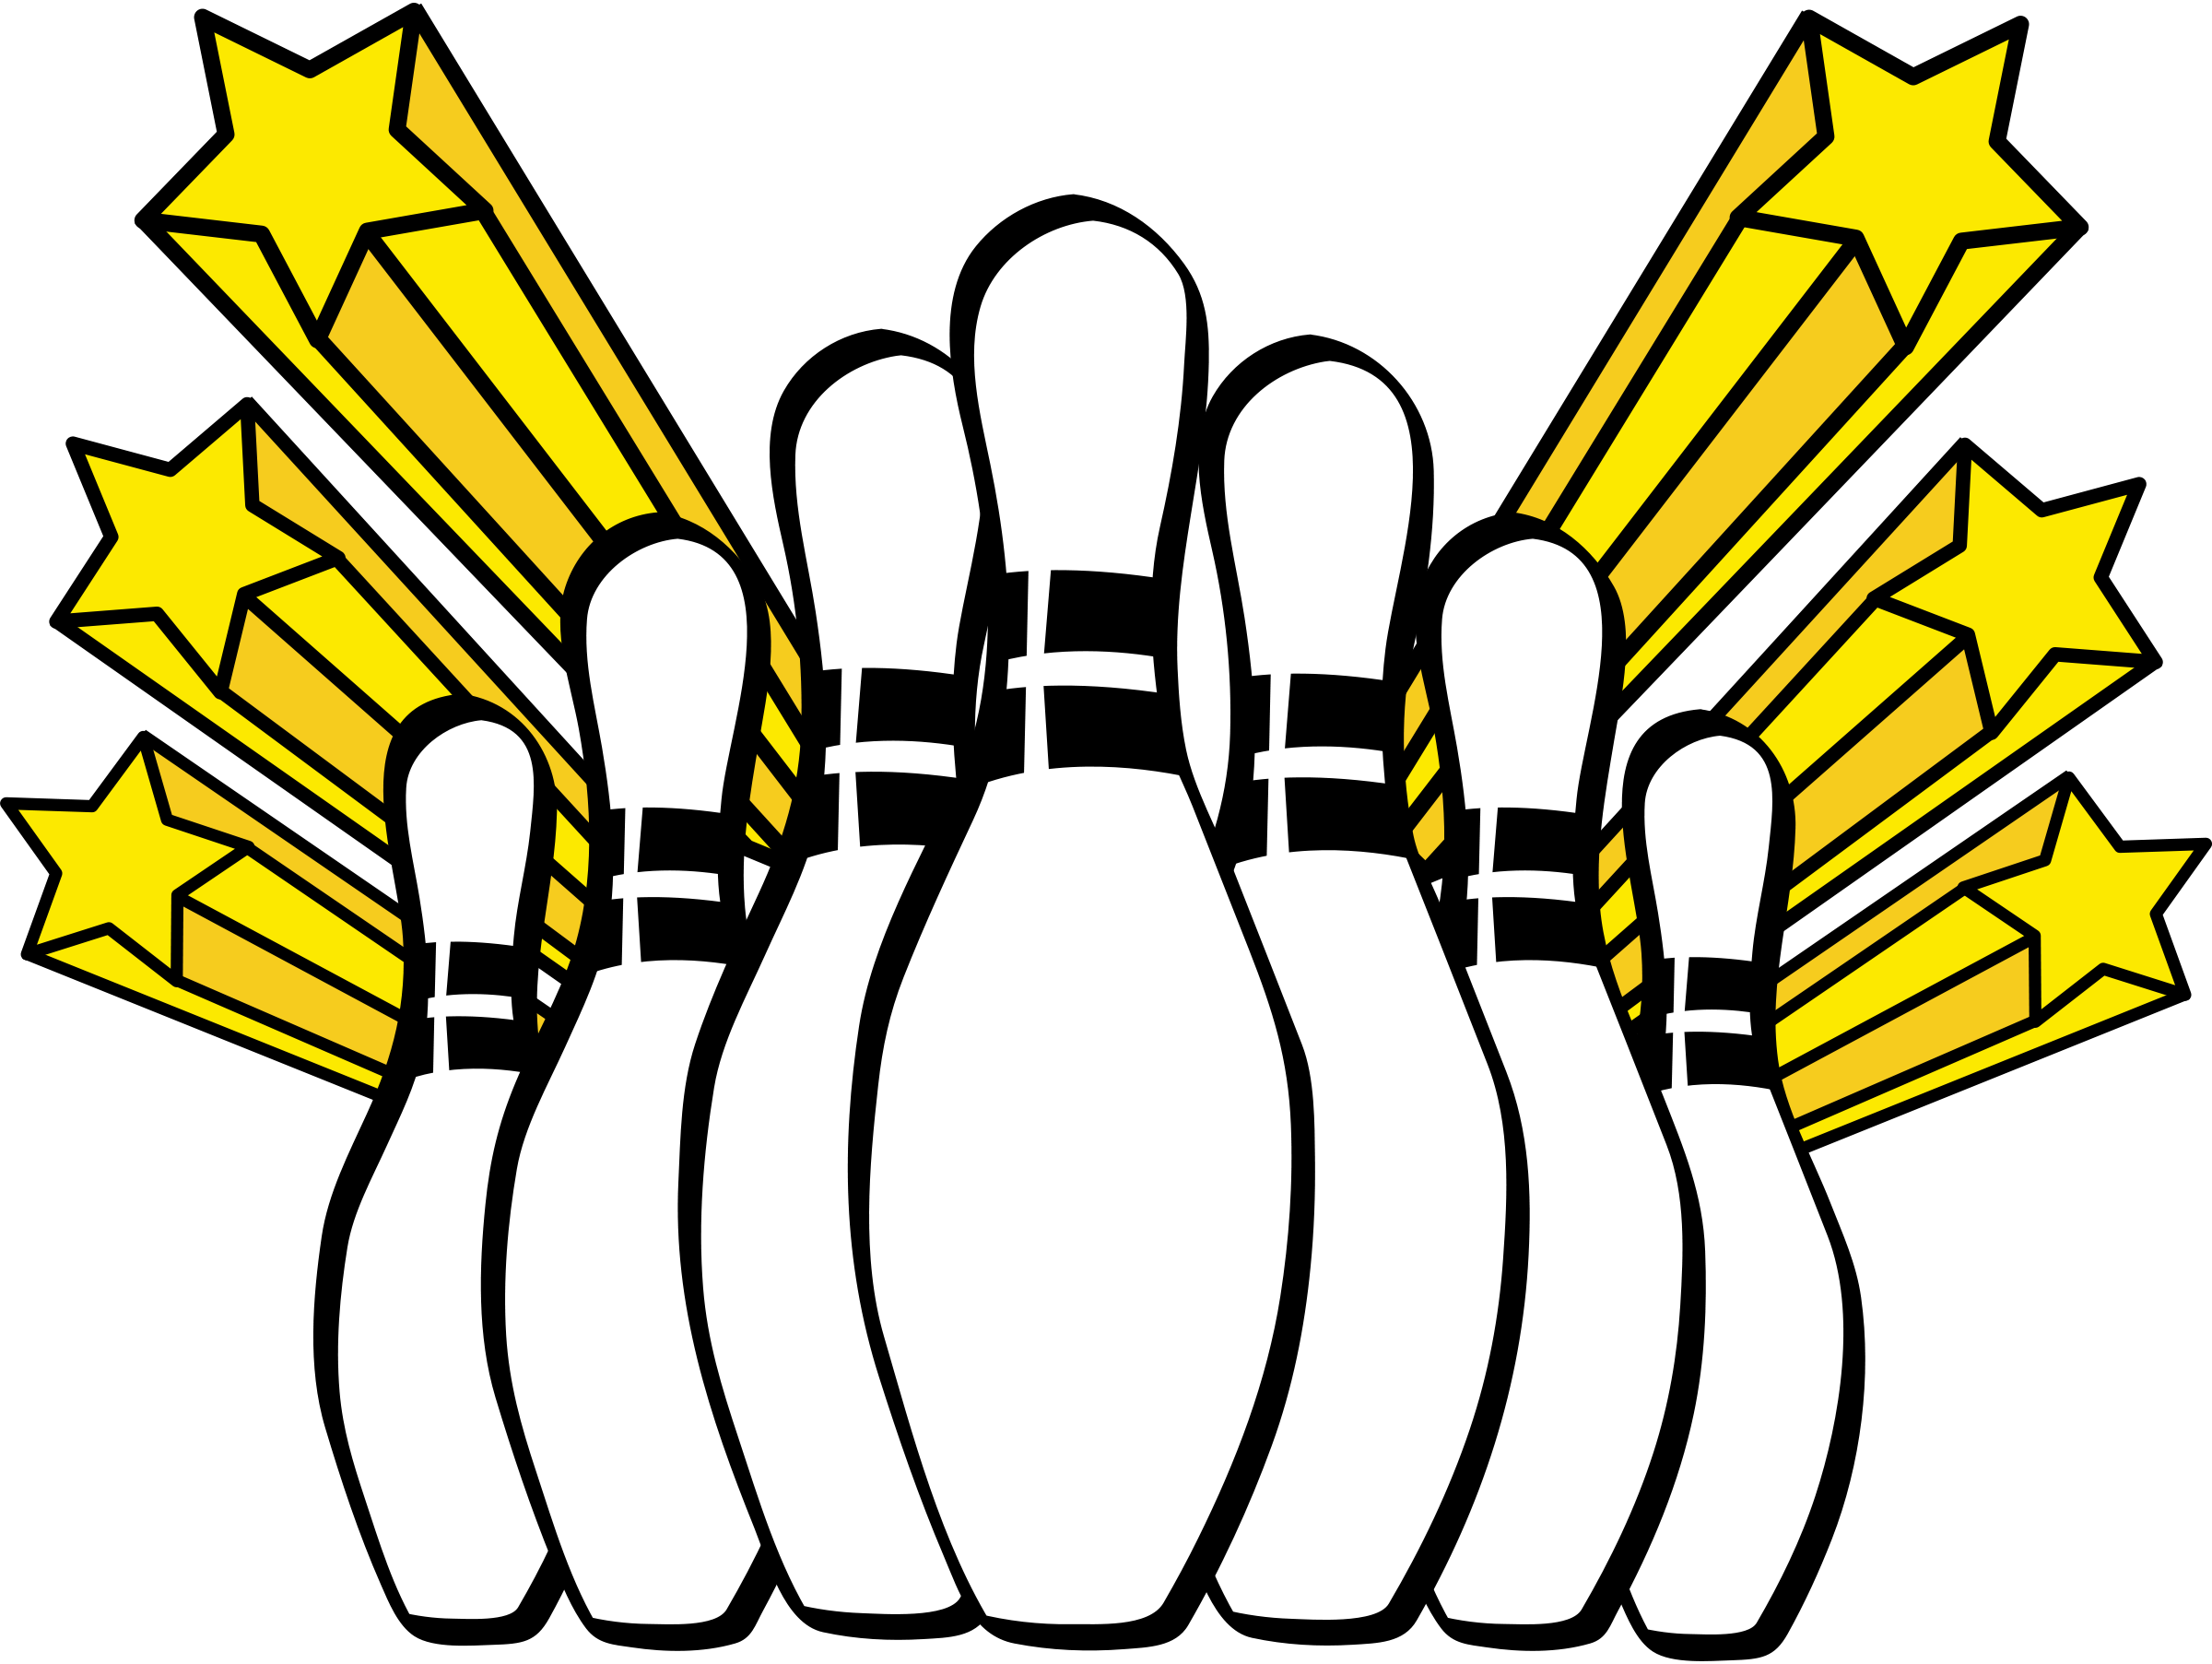 Images For Bowling Clip Art Black And Wh-Images For Bowling Clip Art Black And White. 7e311b2be358c4112ea706840e24ca-16